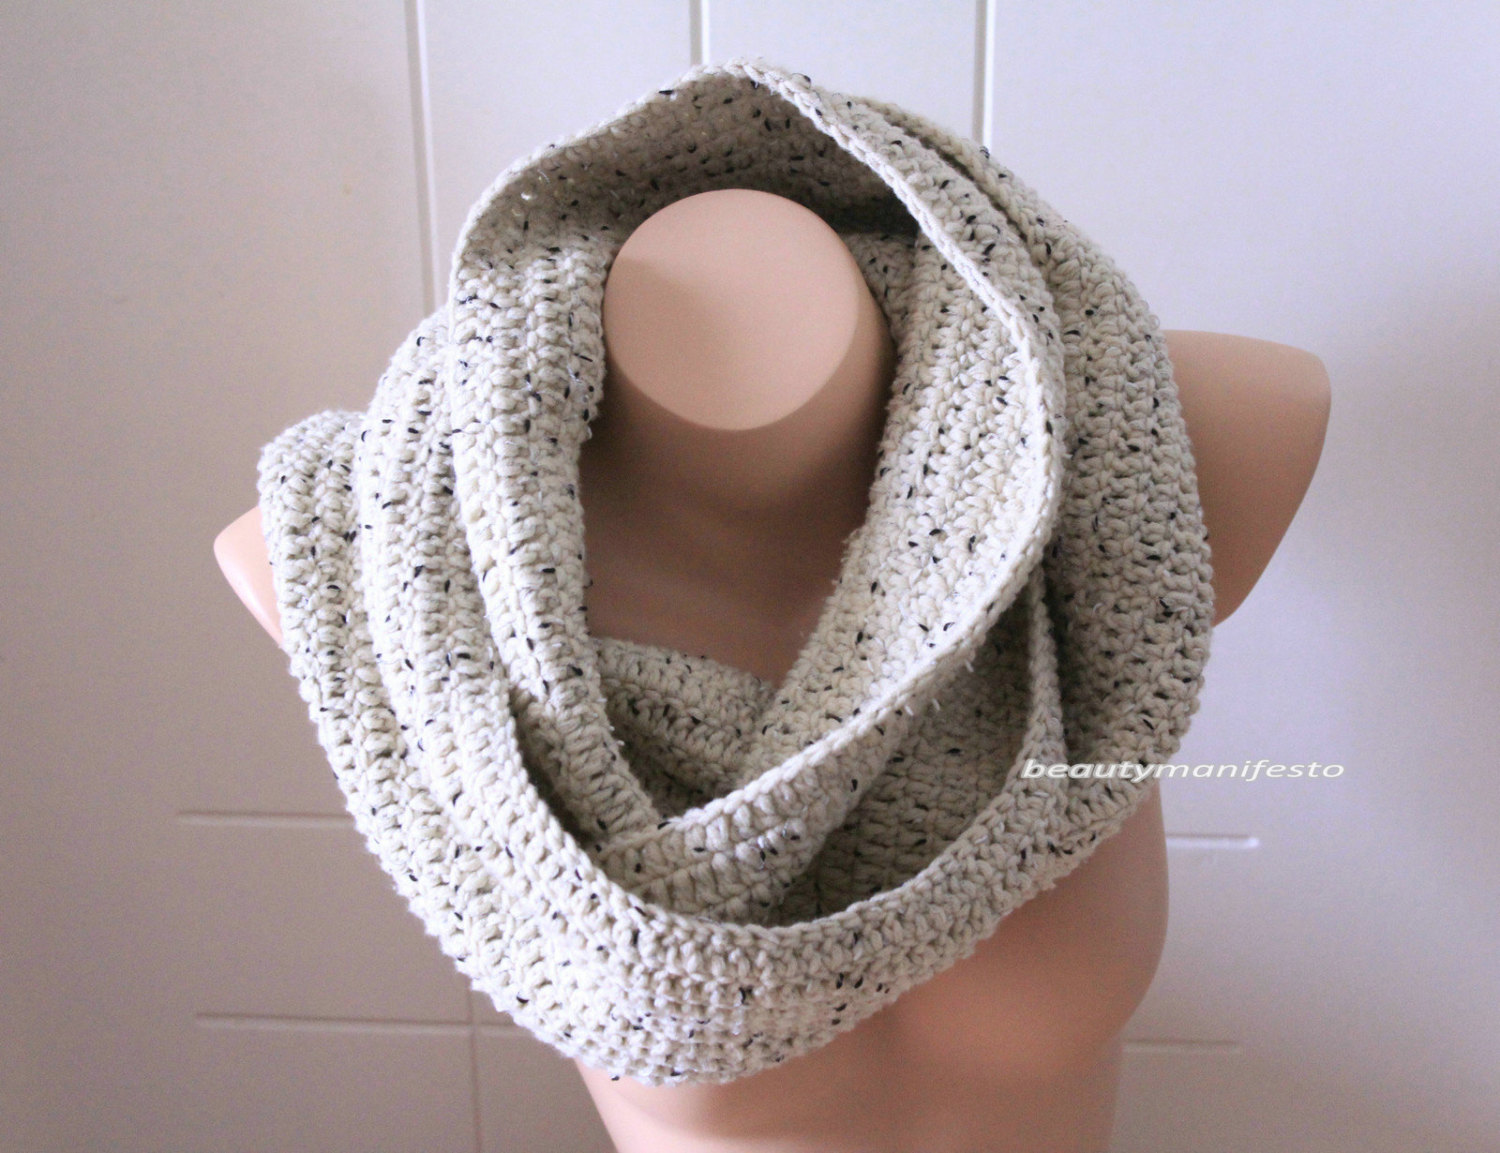 Oversized knit scarf,oversized chunky infinity scarf in oatmeal brown color,crochet infinity scarves, men's scarves